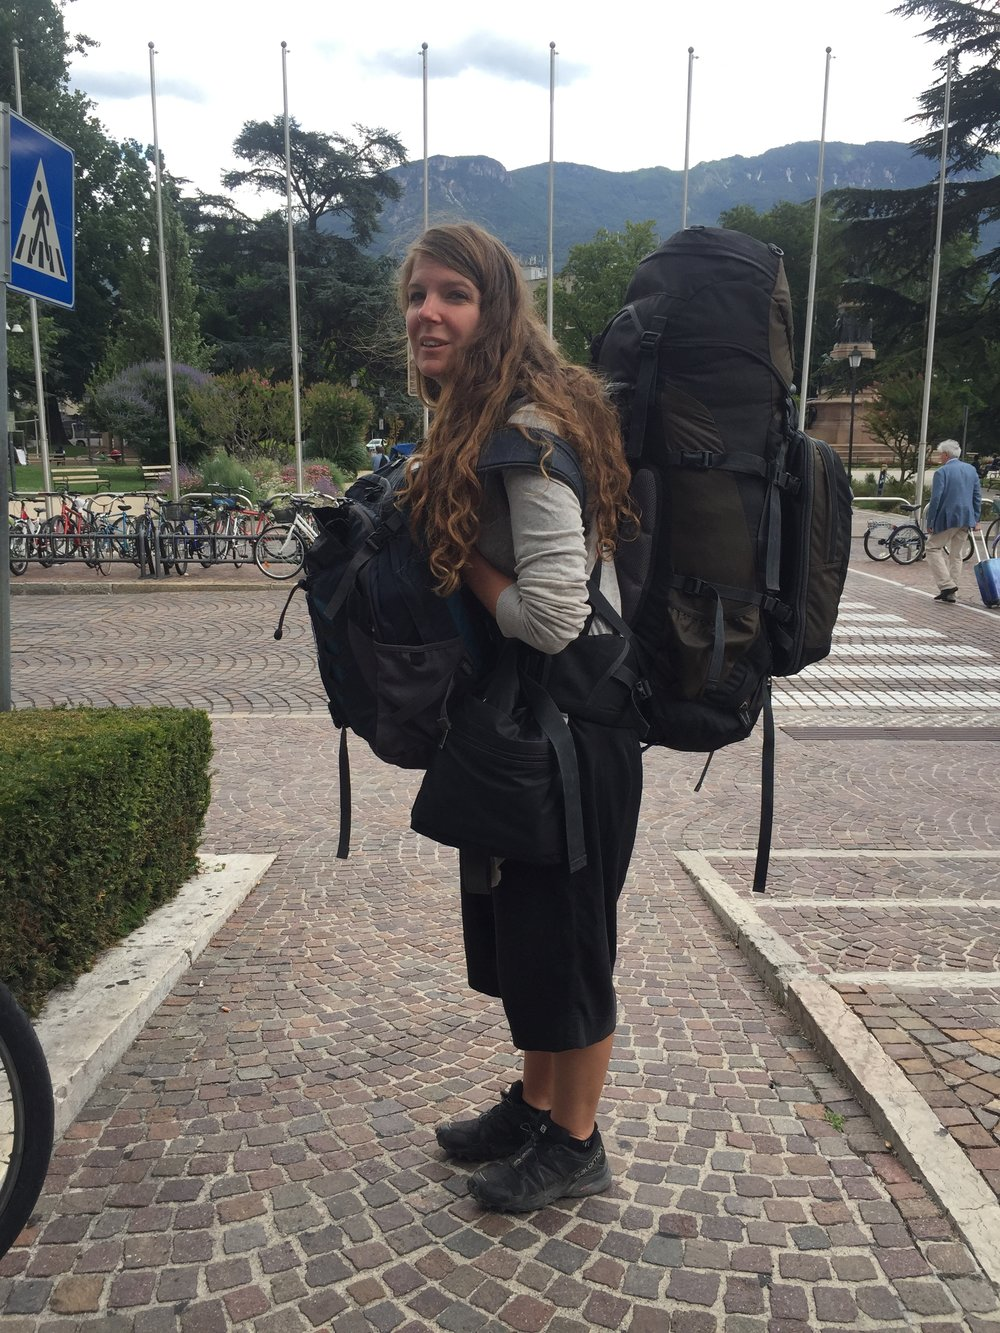 A lighter load than normal: Jill sports everything necessary for full time travel